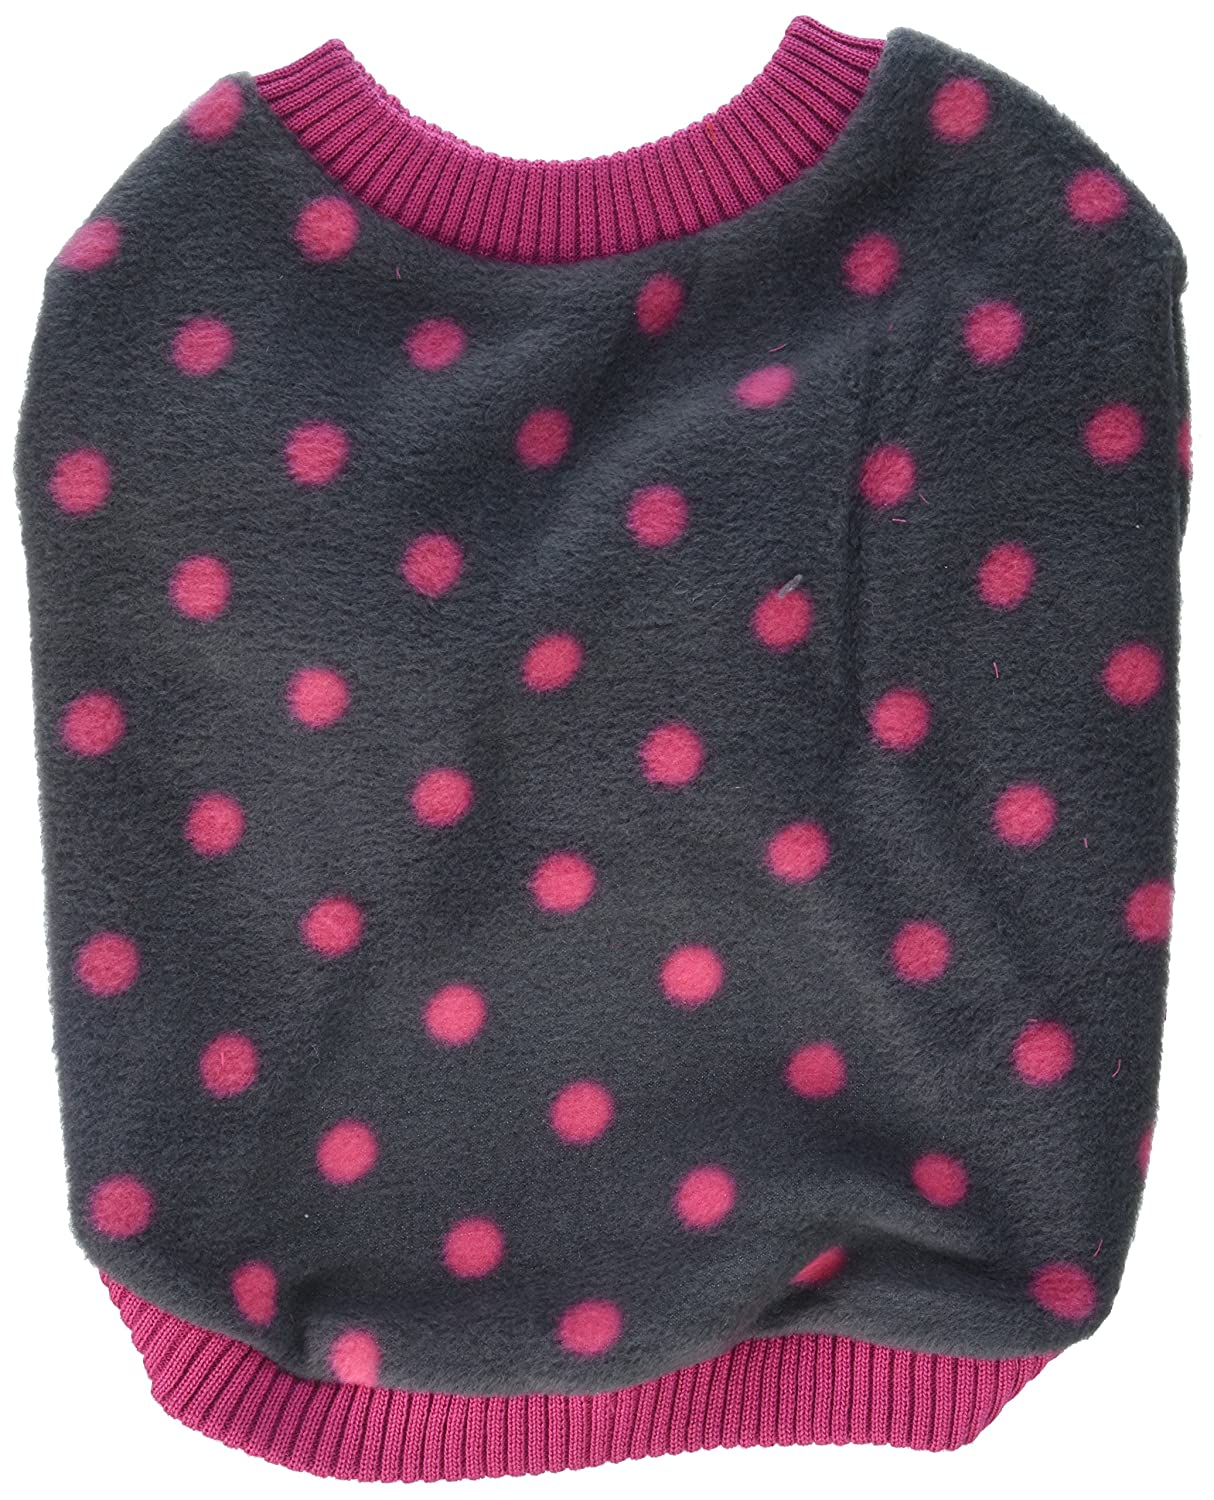 Large Grey Pink Polka Dot Extra Soft Fleece Sweater Pink Trim [Small Dogs], Large